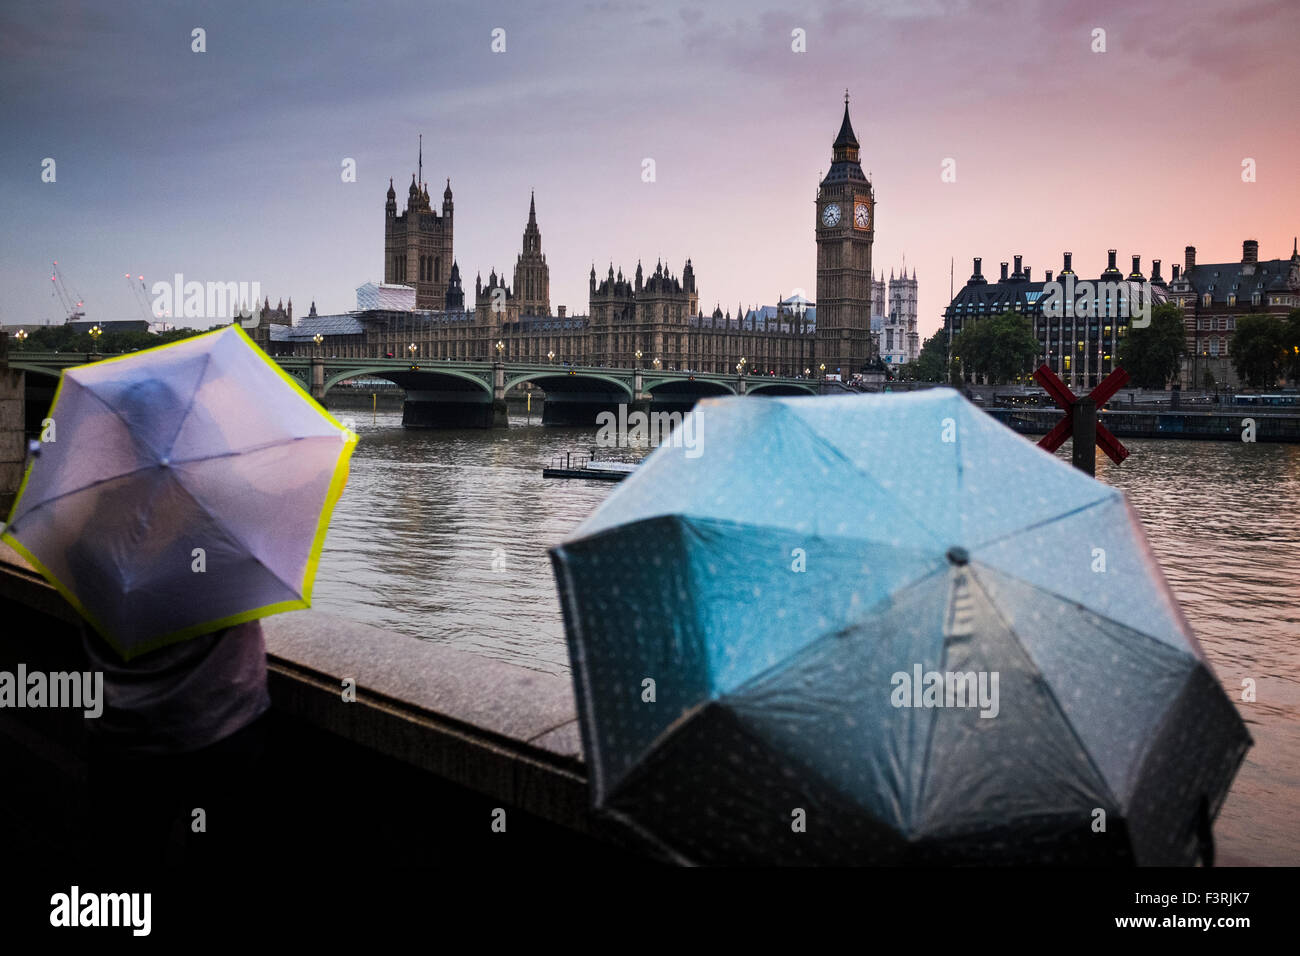 Westminster Bridge, Big Ben and Westminster Palace in rainy weather, London, United Kingdom - Stock Image